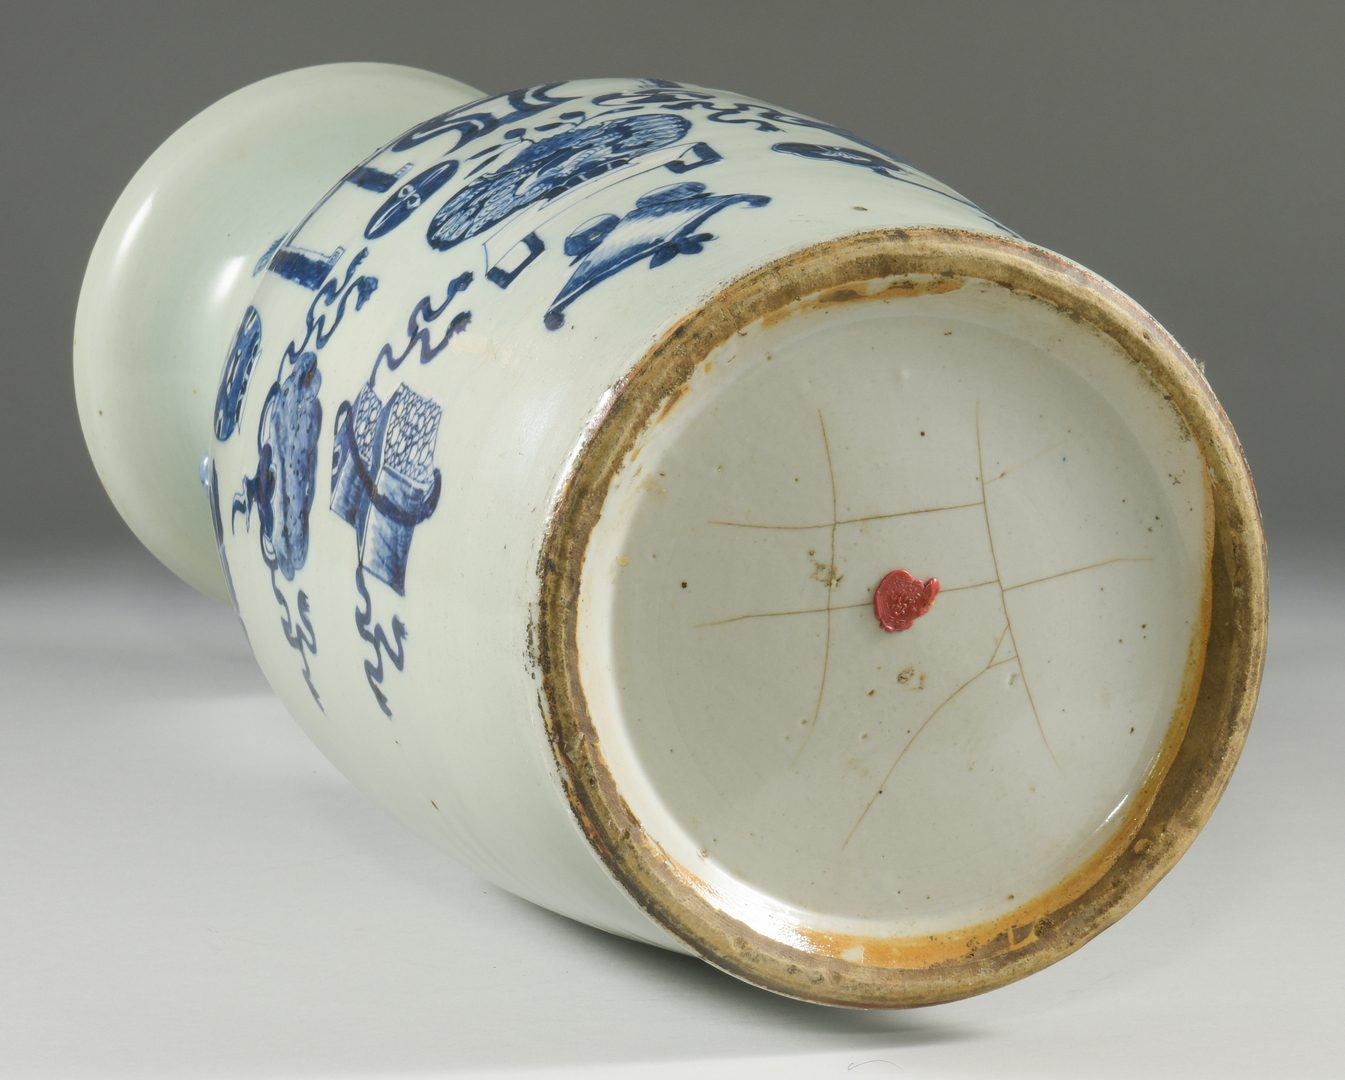 Lot 21: Chinese Blue & White Porcelain Floor Vase